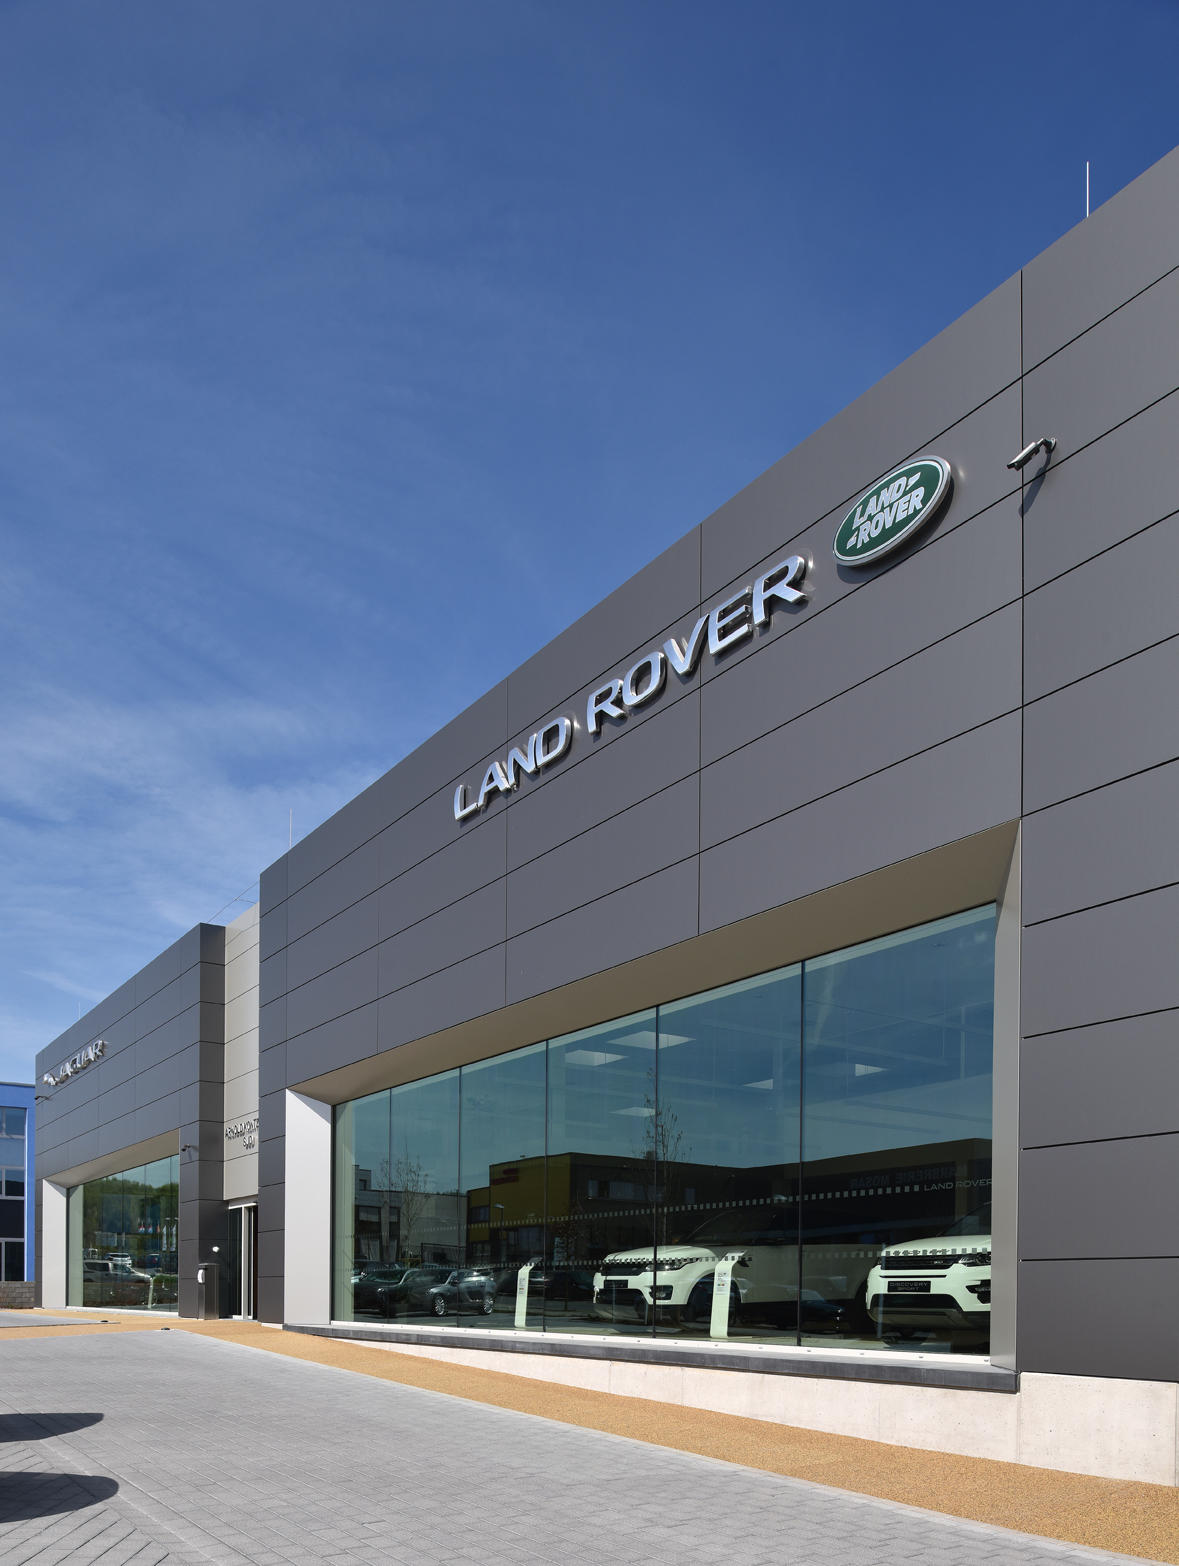 Land Rover Luxembourg Sud